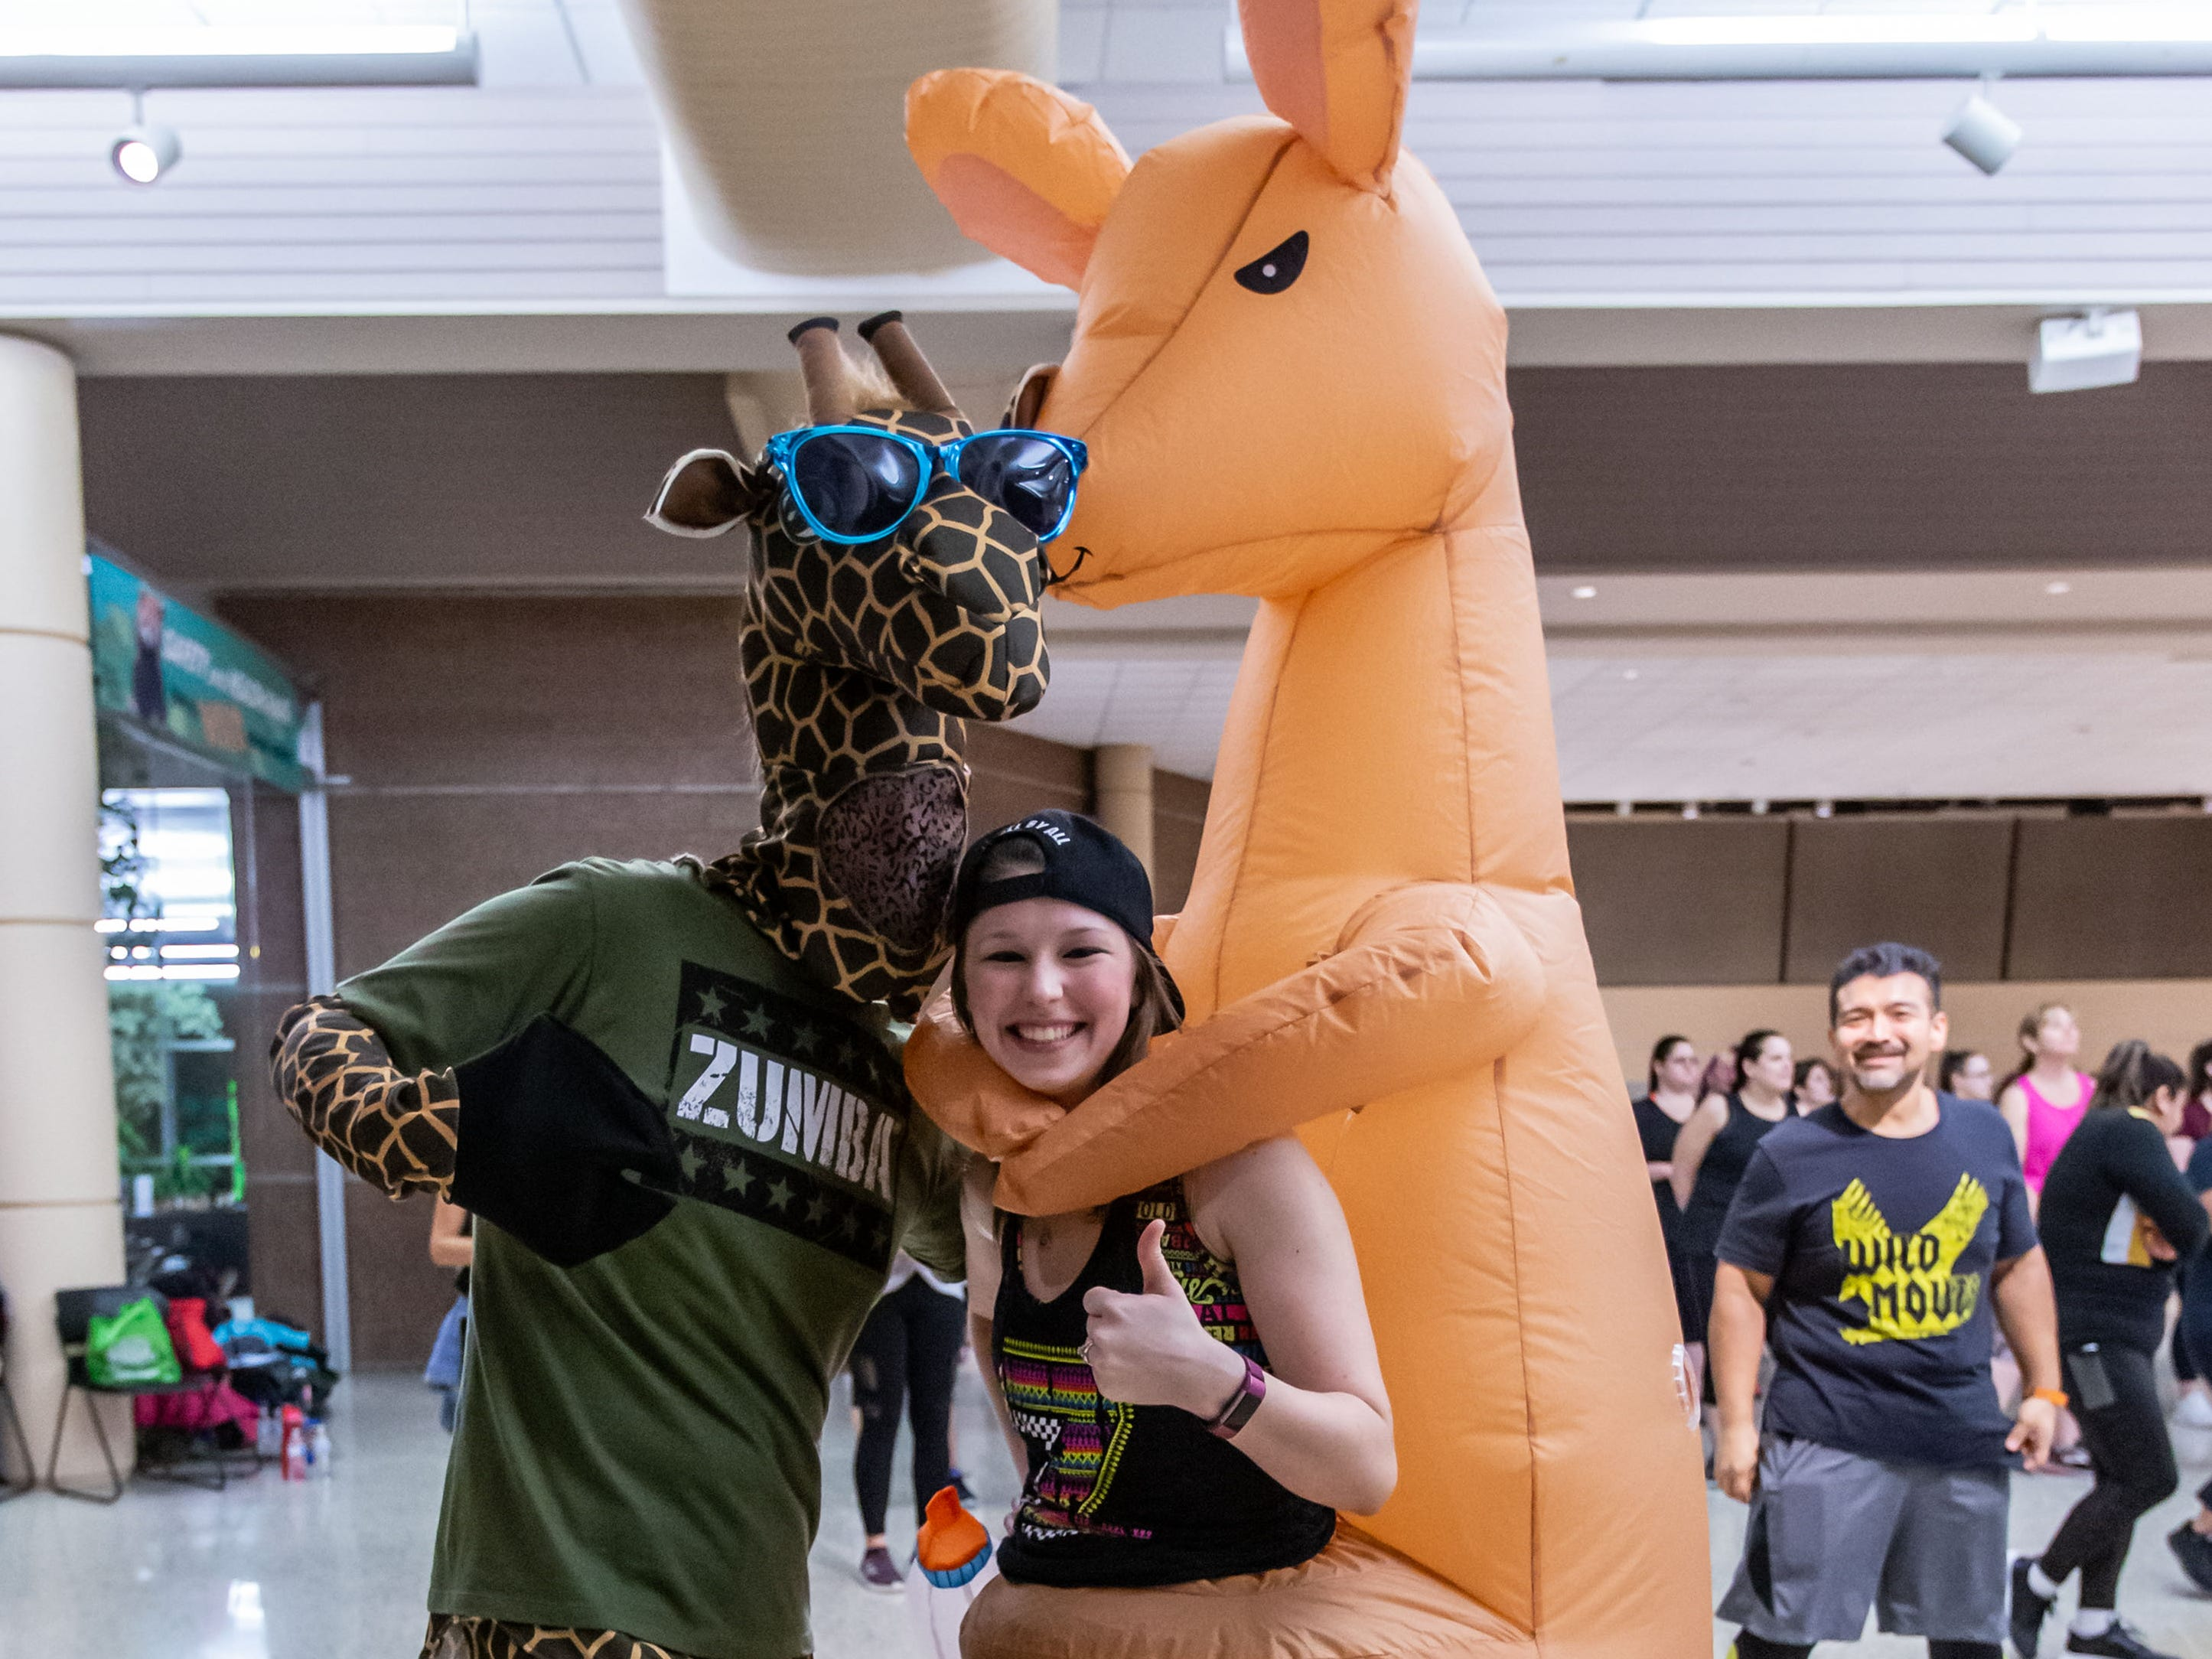 Instructors Brian Kobasick and Janel Martens pose for a photo during the Zoological Society's Zumba Fitness Party at the Milwaukee County Zoo on Saturday, Feb. 23, 2019. Proceeds from the event benefit the Zoological Society's Sponsor an Animal program.